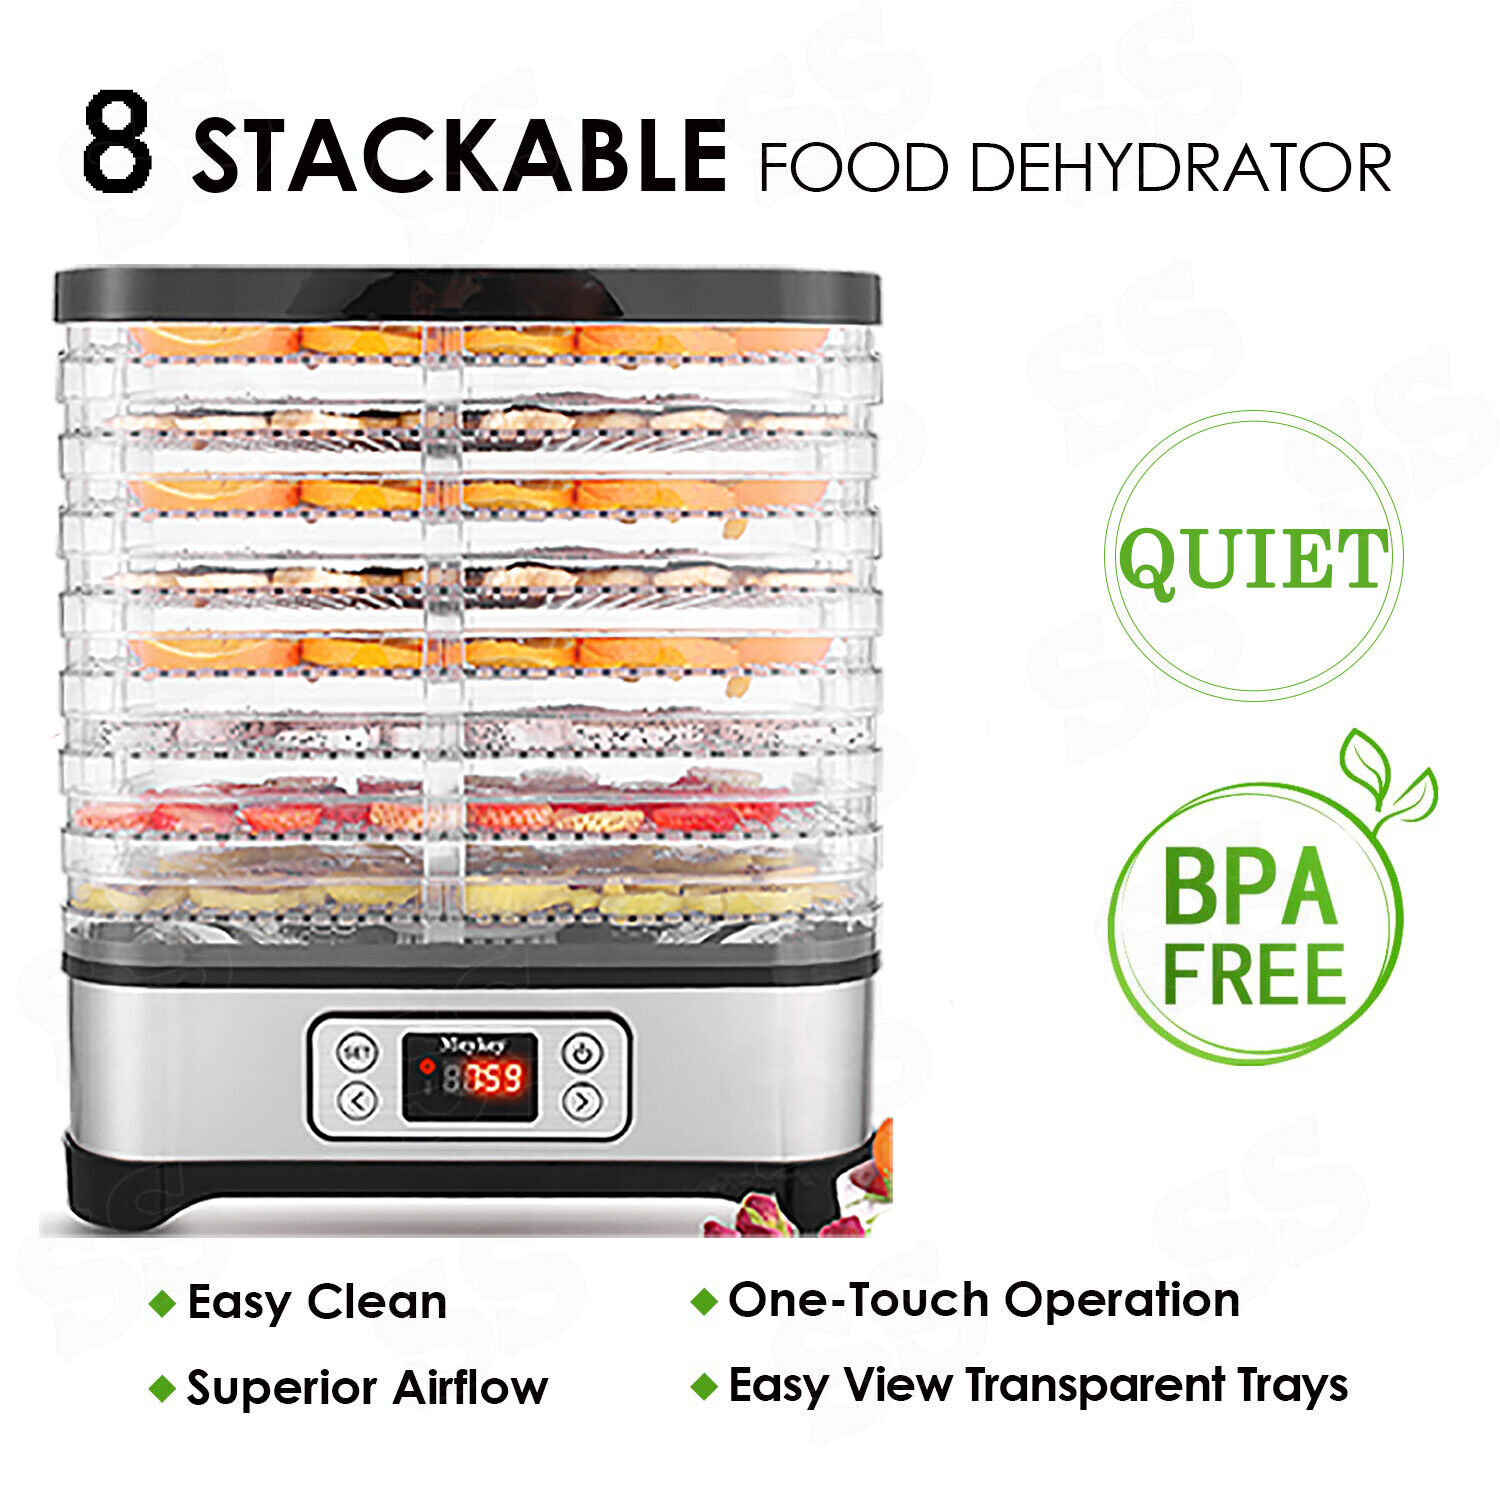 400w electric food dehydrator 8 tray stackable